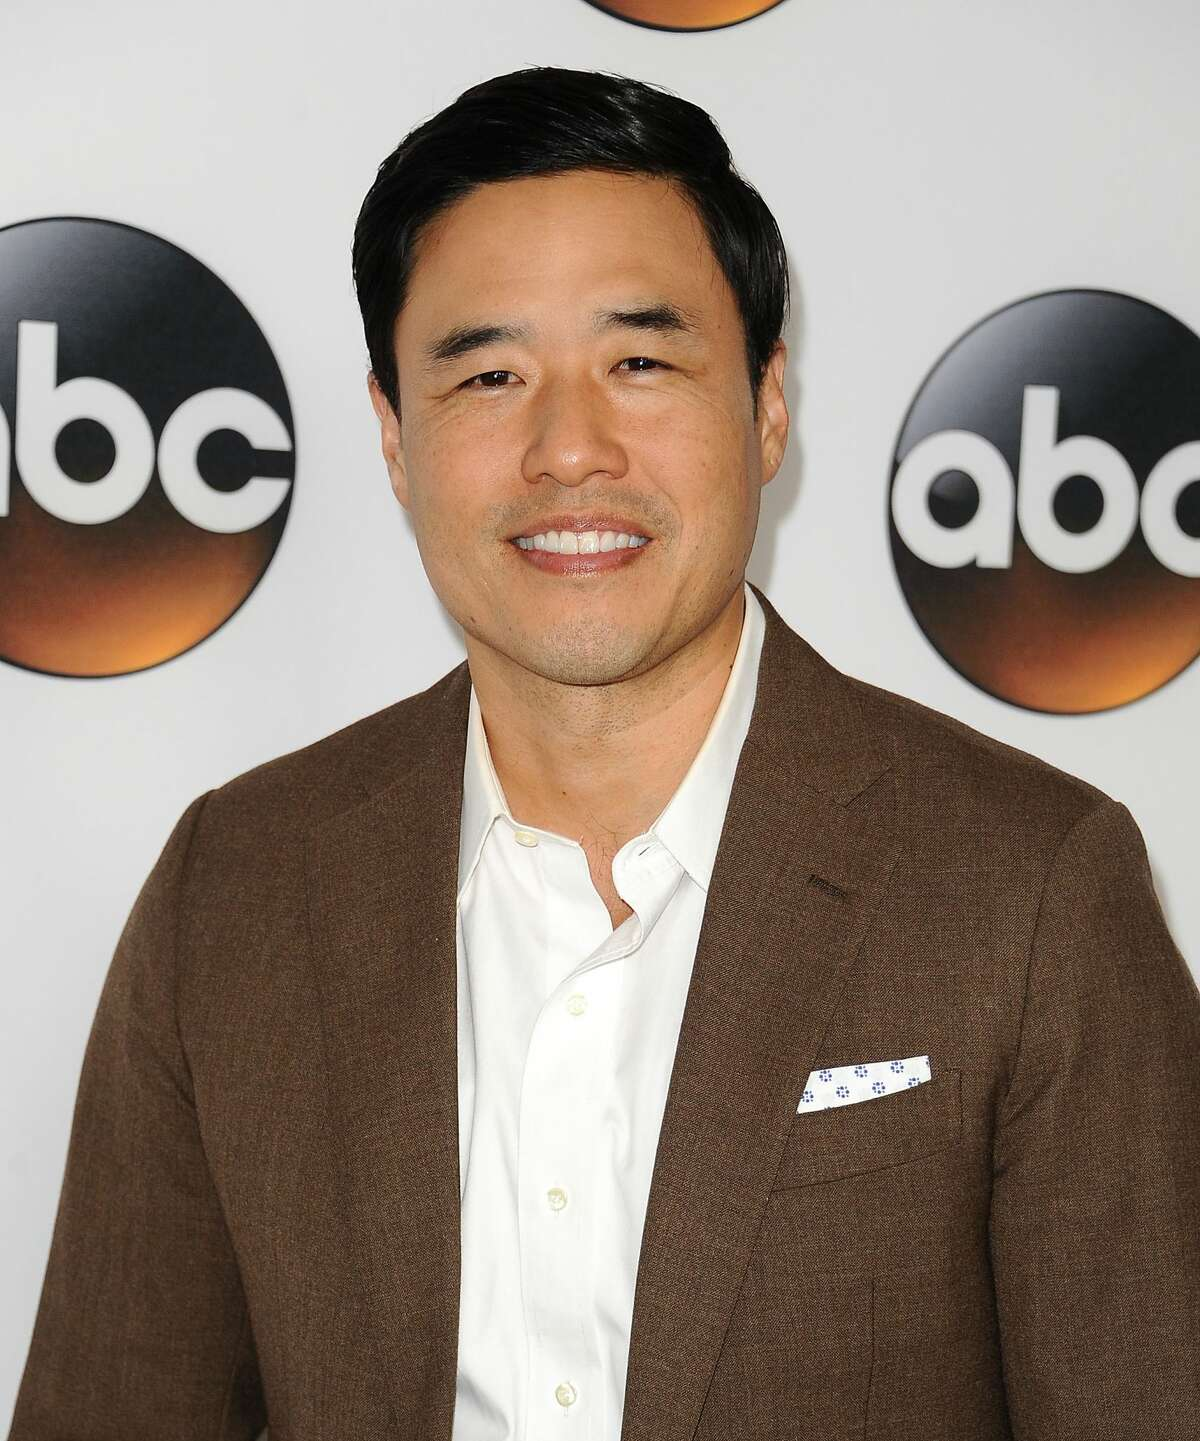 BEVERLY HILLS, CA - AUGUST 06: Actor Randall Park attends the Disney ABC Television Group TCA summer press tour at The Beverly Hilton Hotel on August 6, 2017 in Beverly Hills, California.